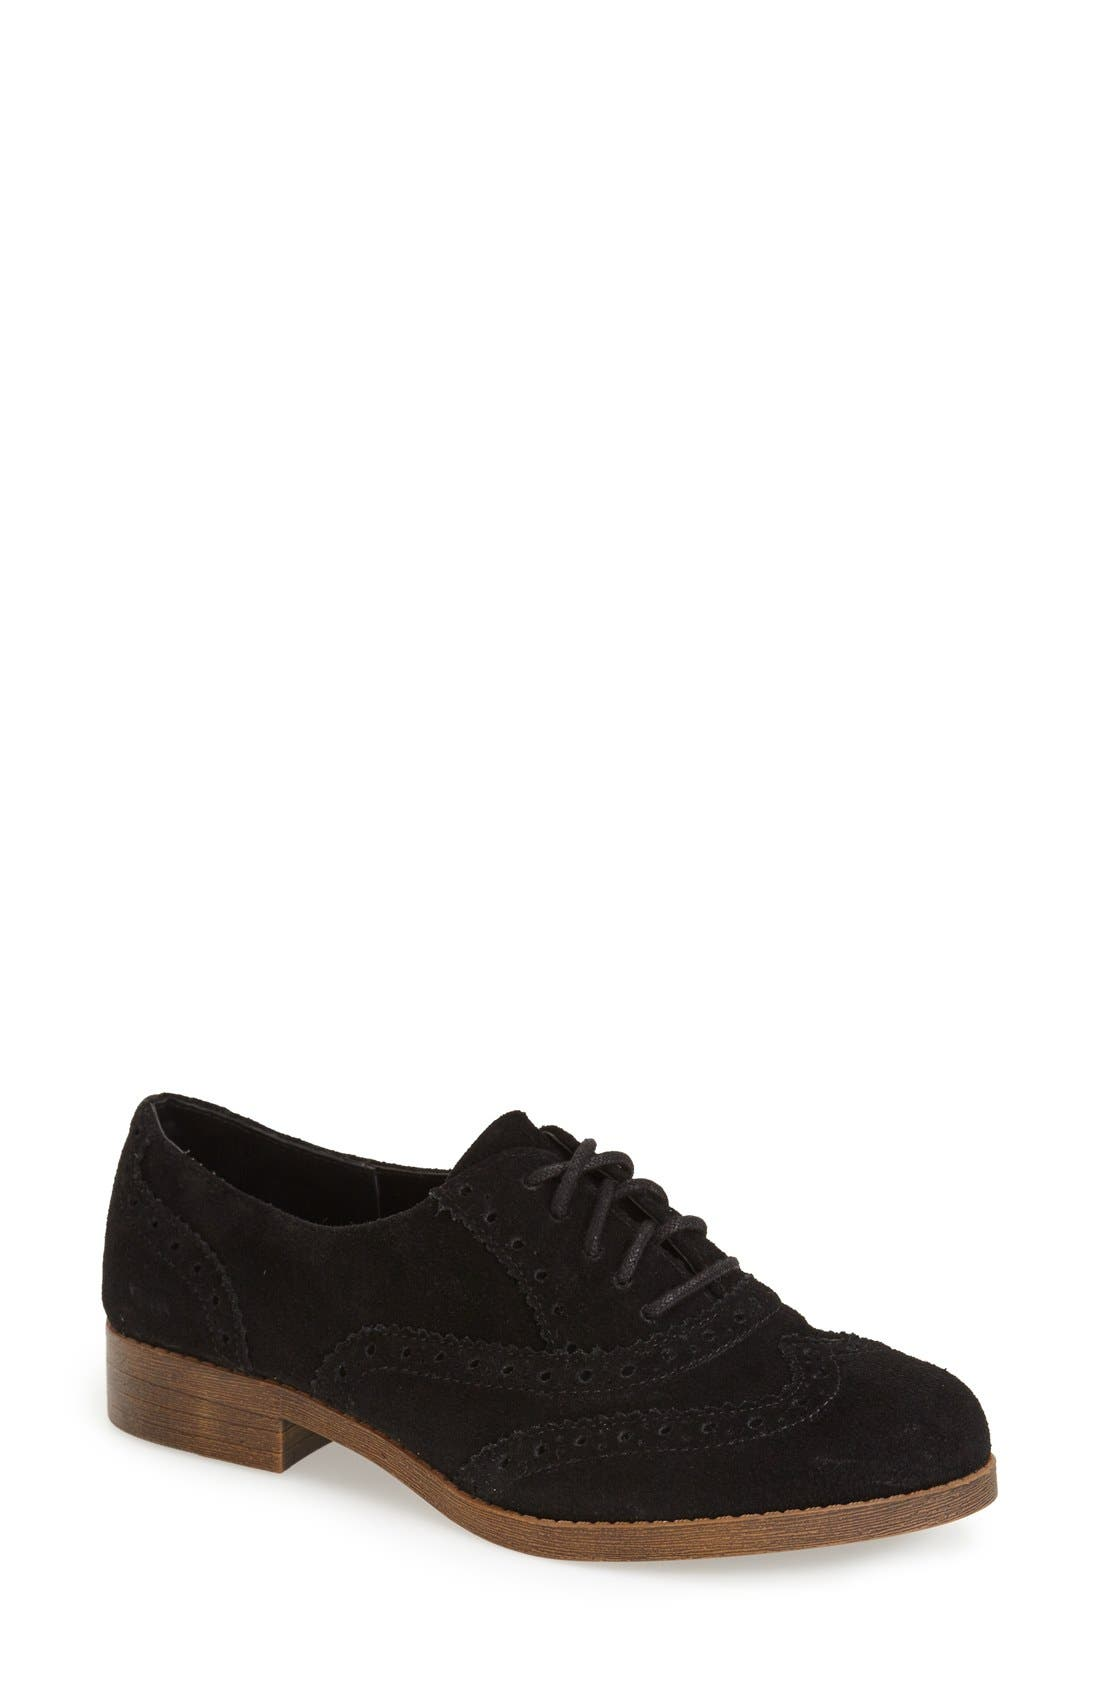 Alternate Image 1 Selected - Sole Society 'Agga' Oxford (Women)